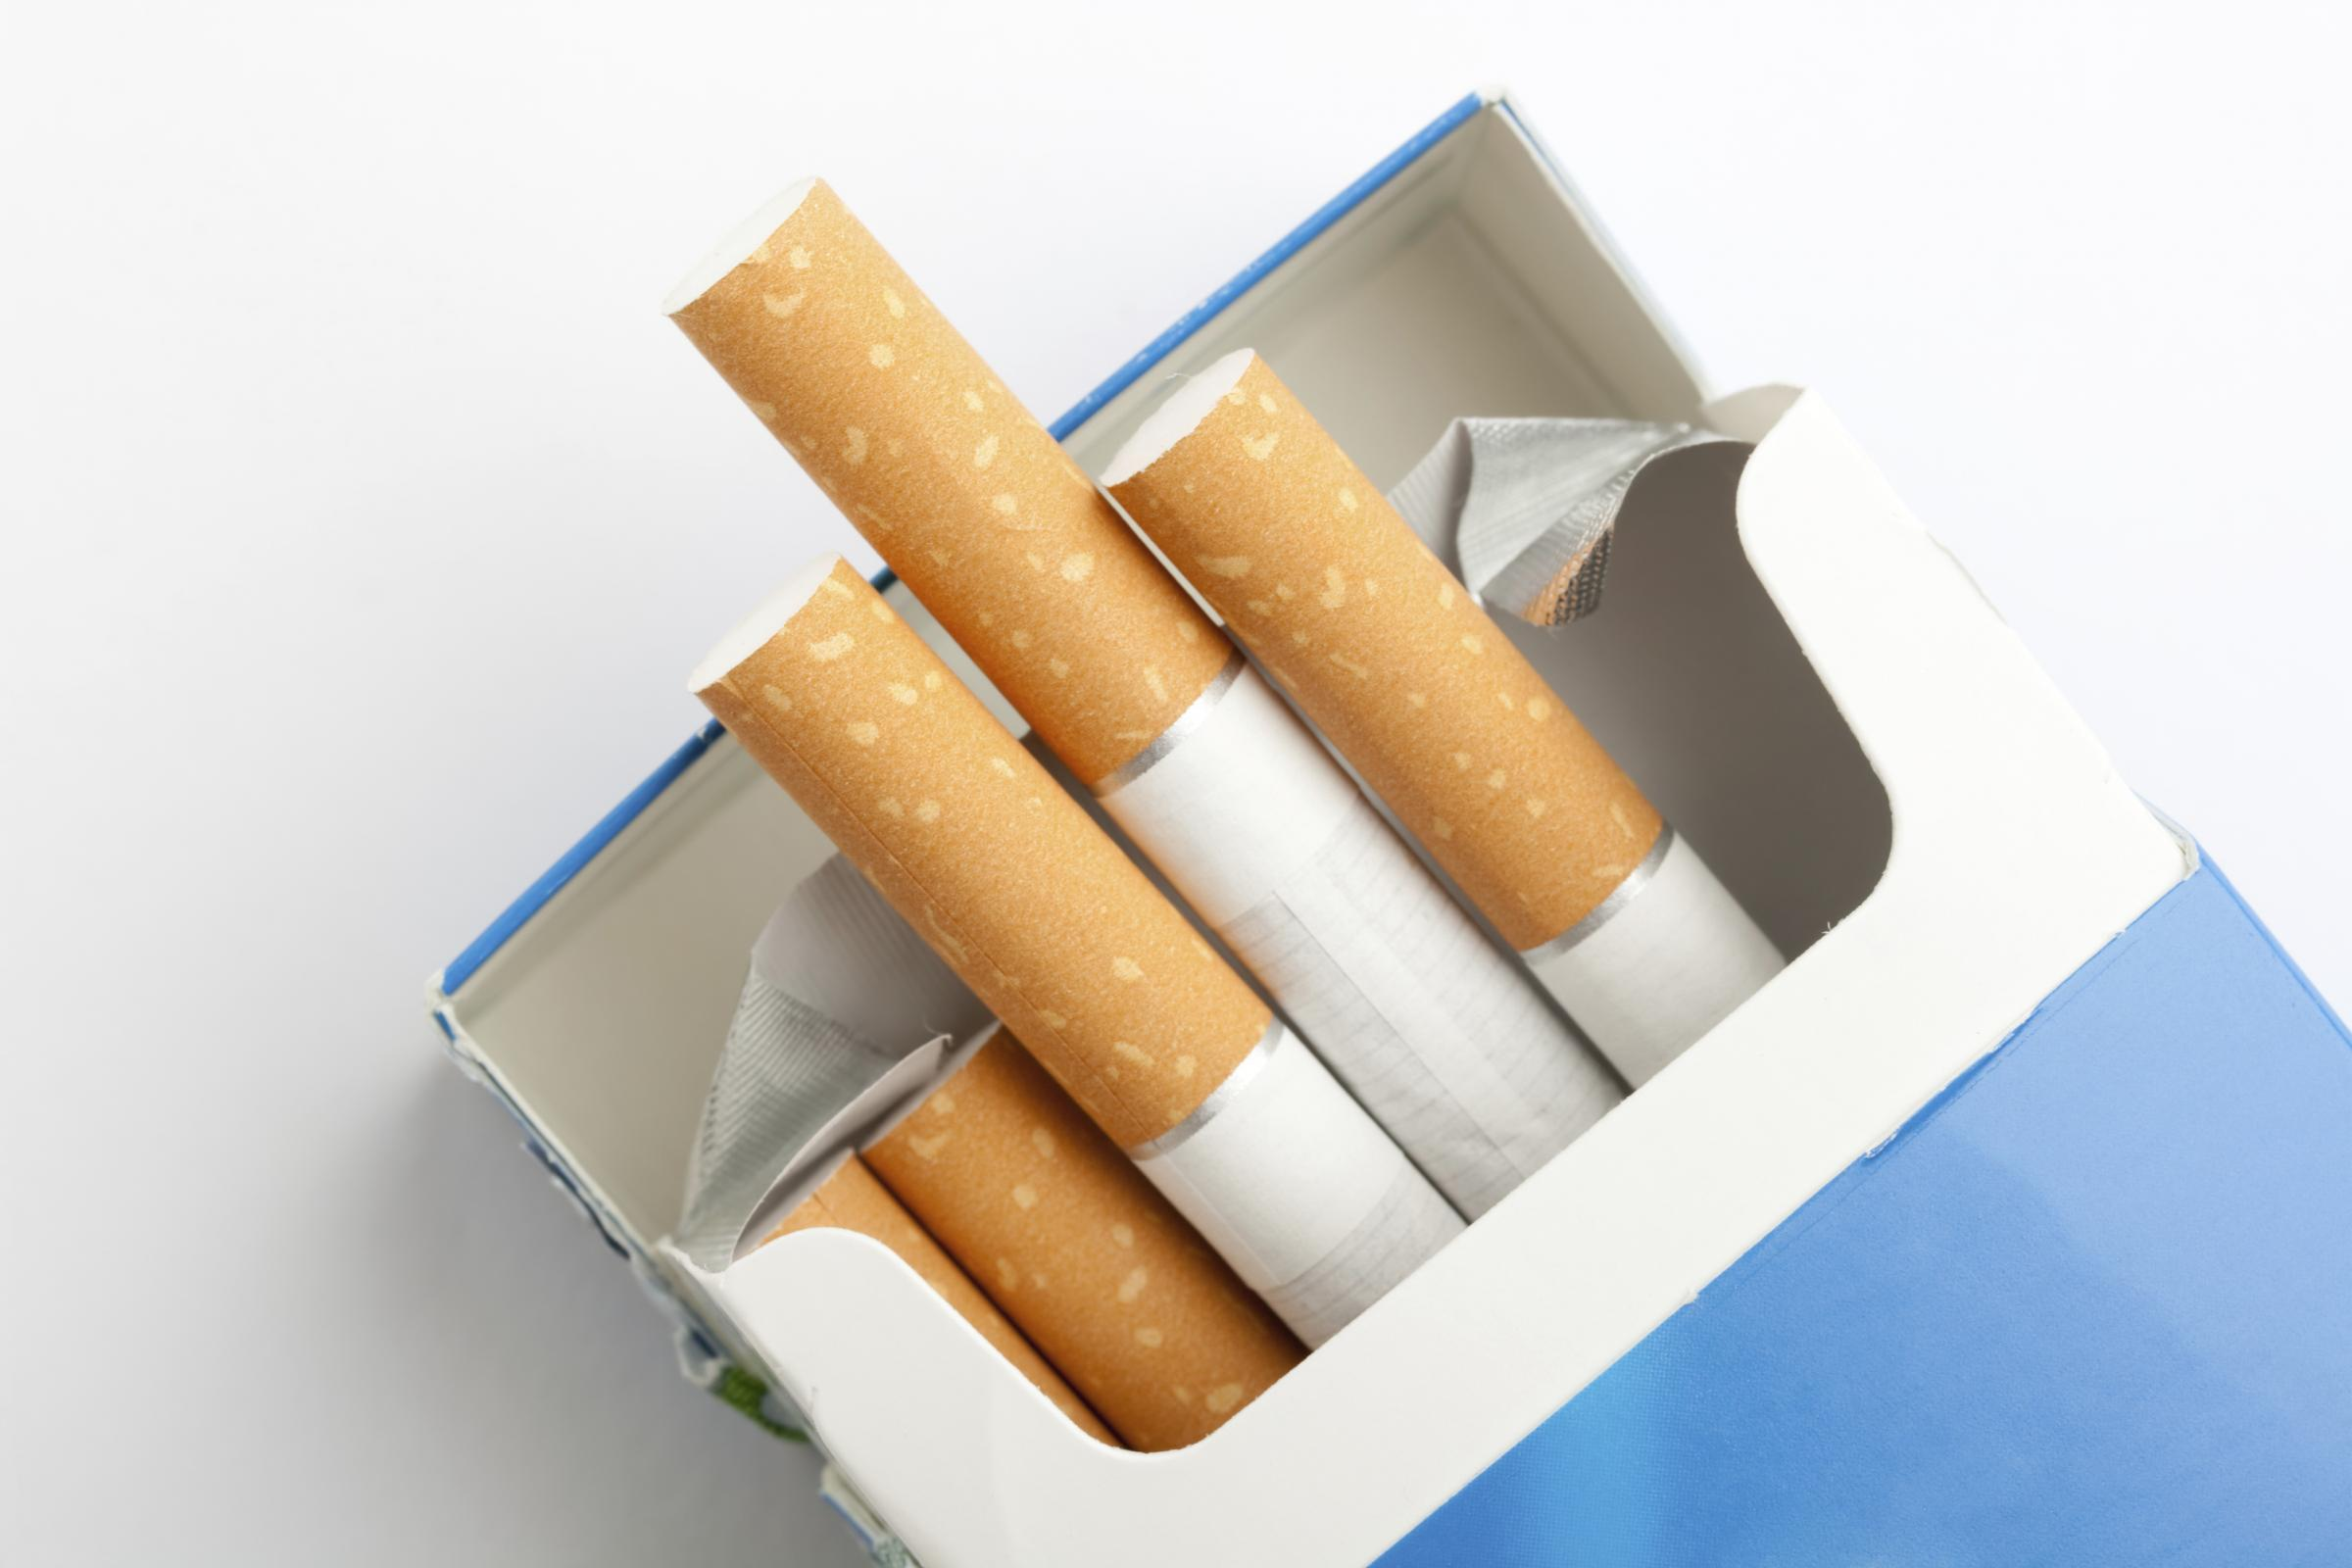 Selling illicit cigarettes led to fines